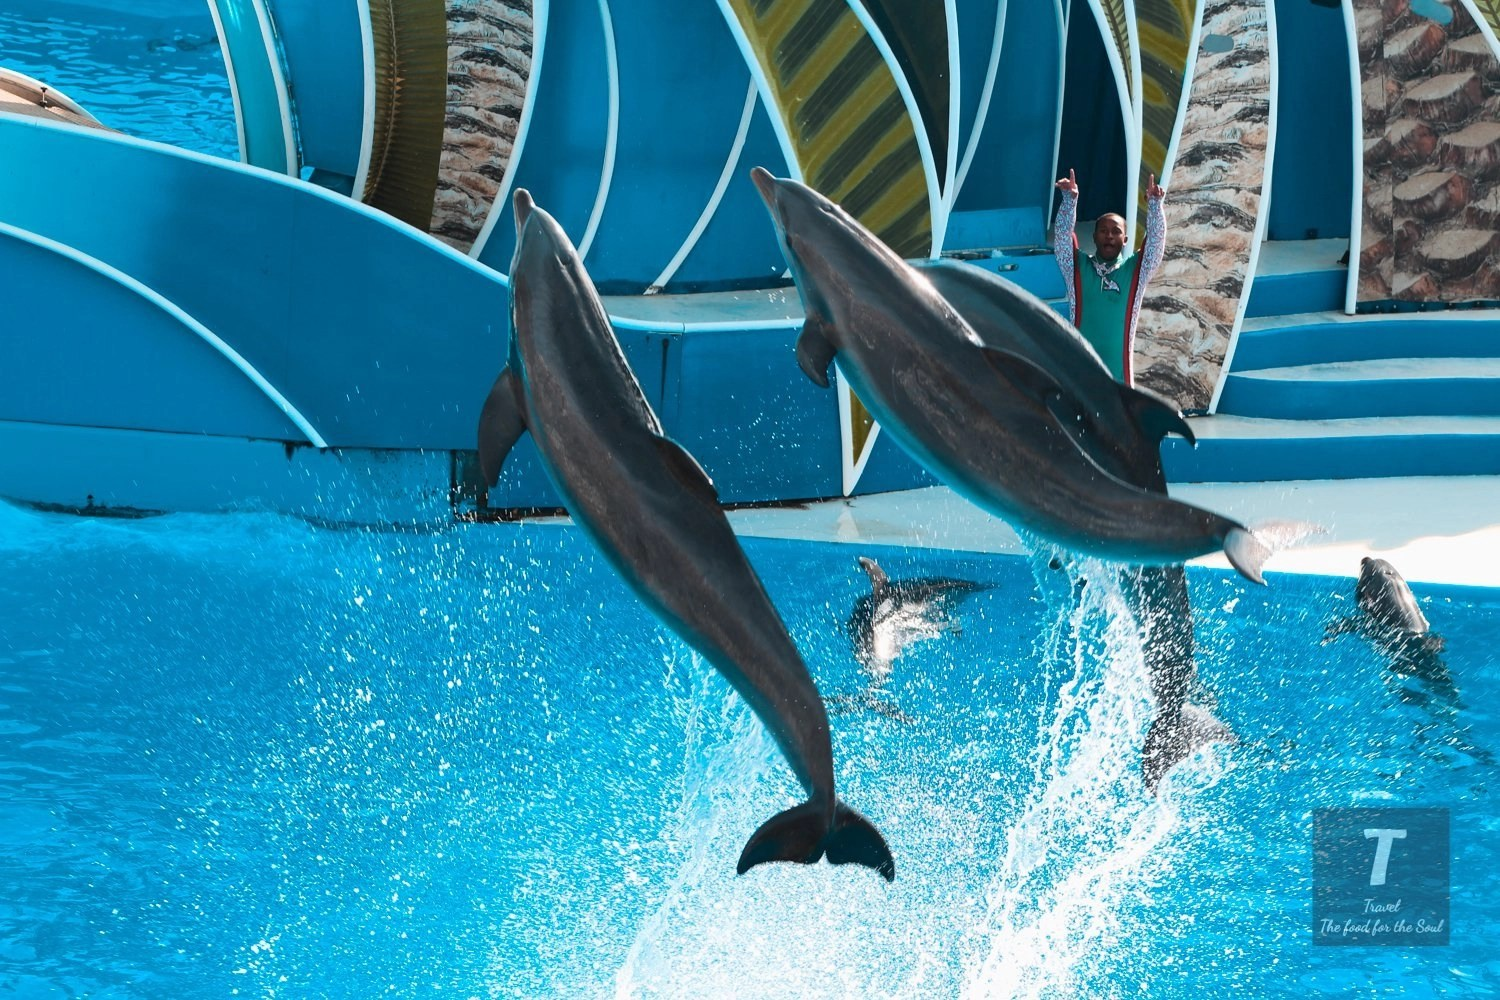 San Diego SeaWorld | San Diego Travel Guide